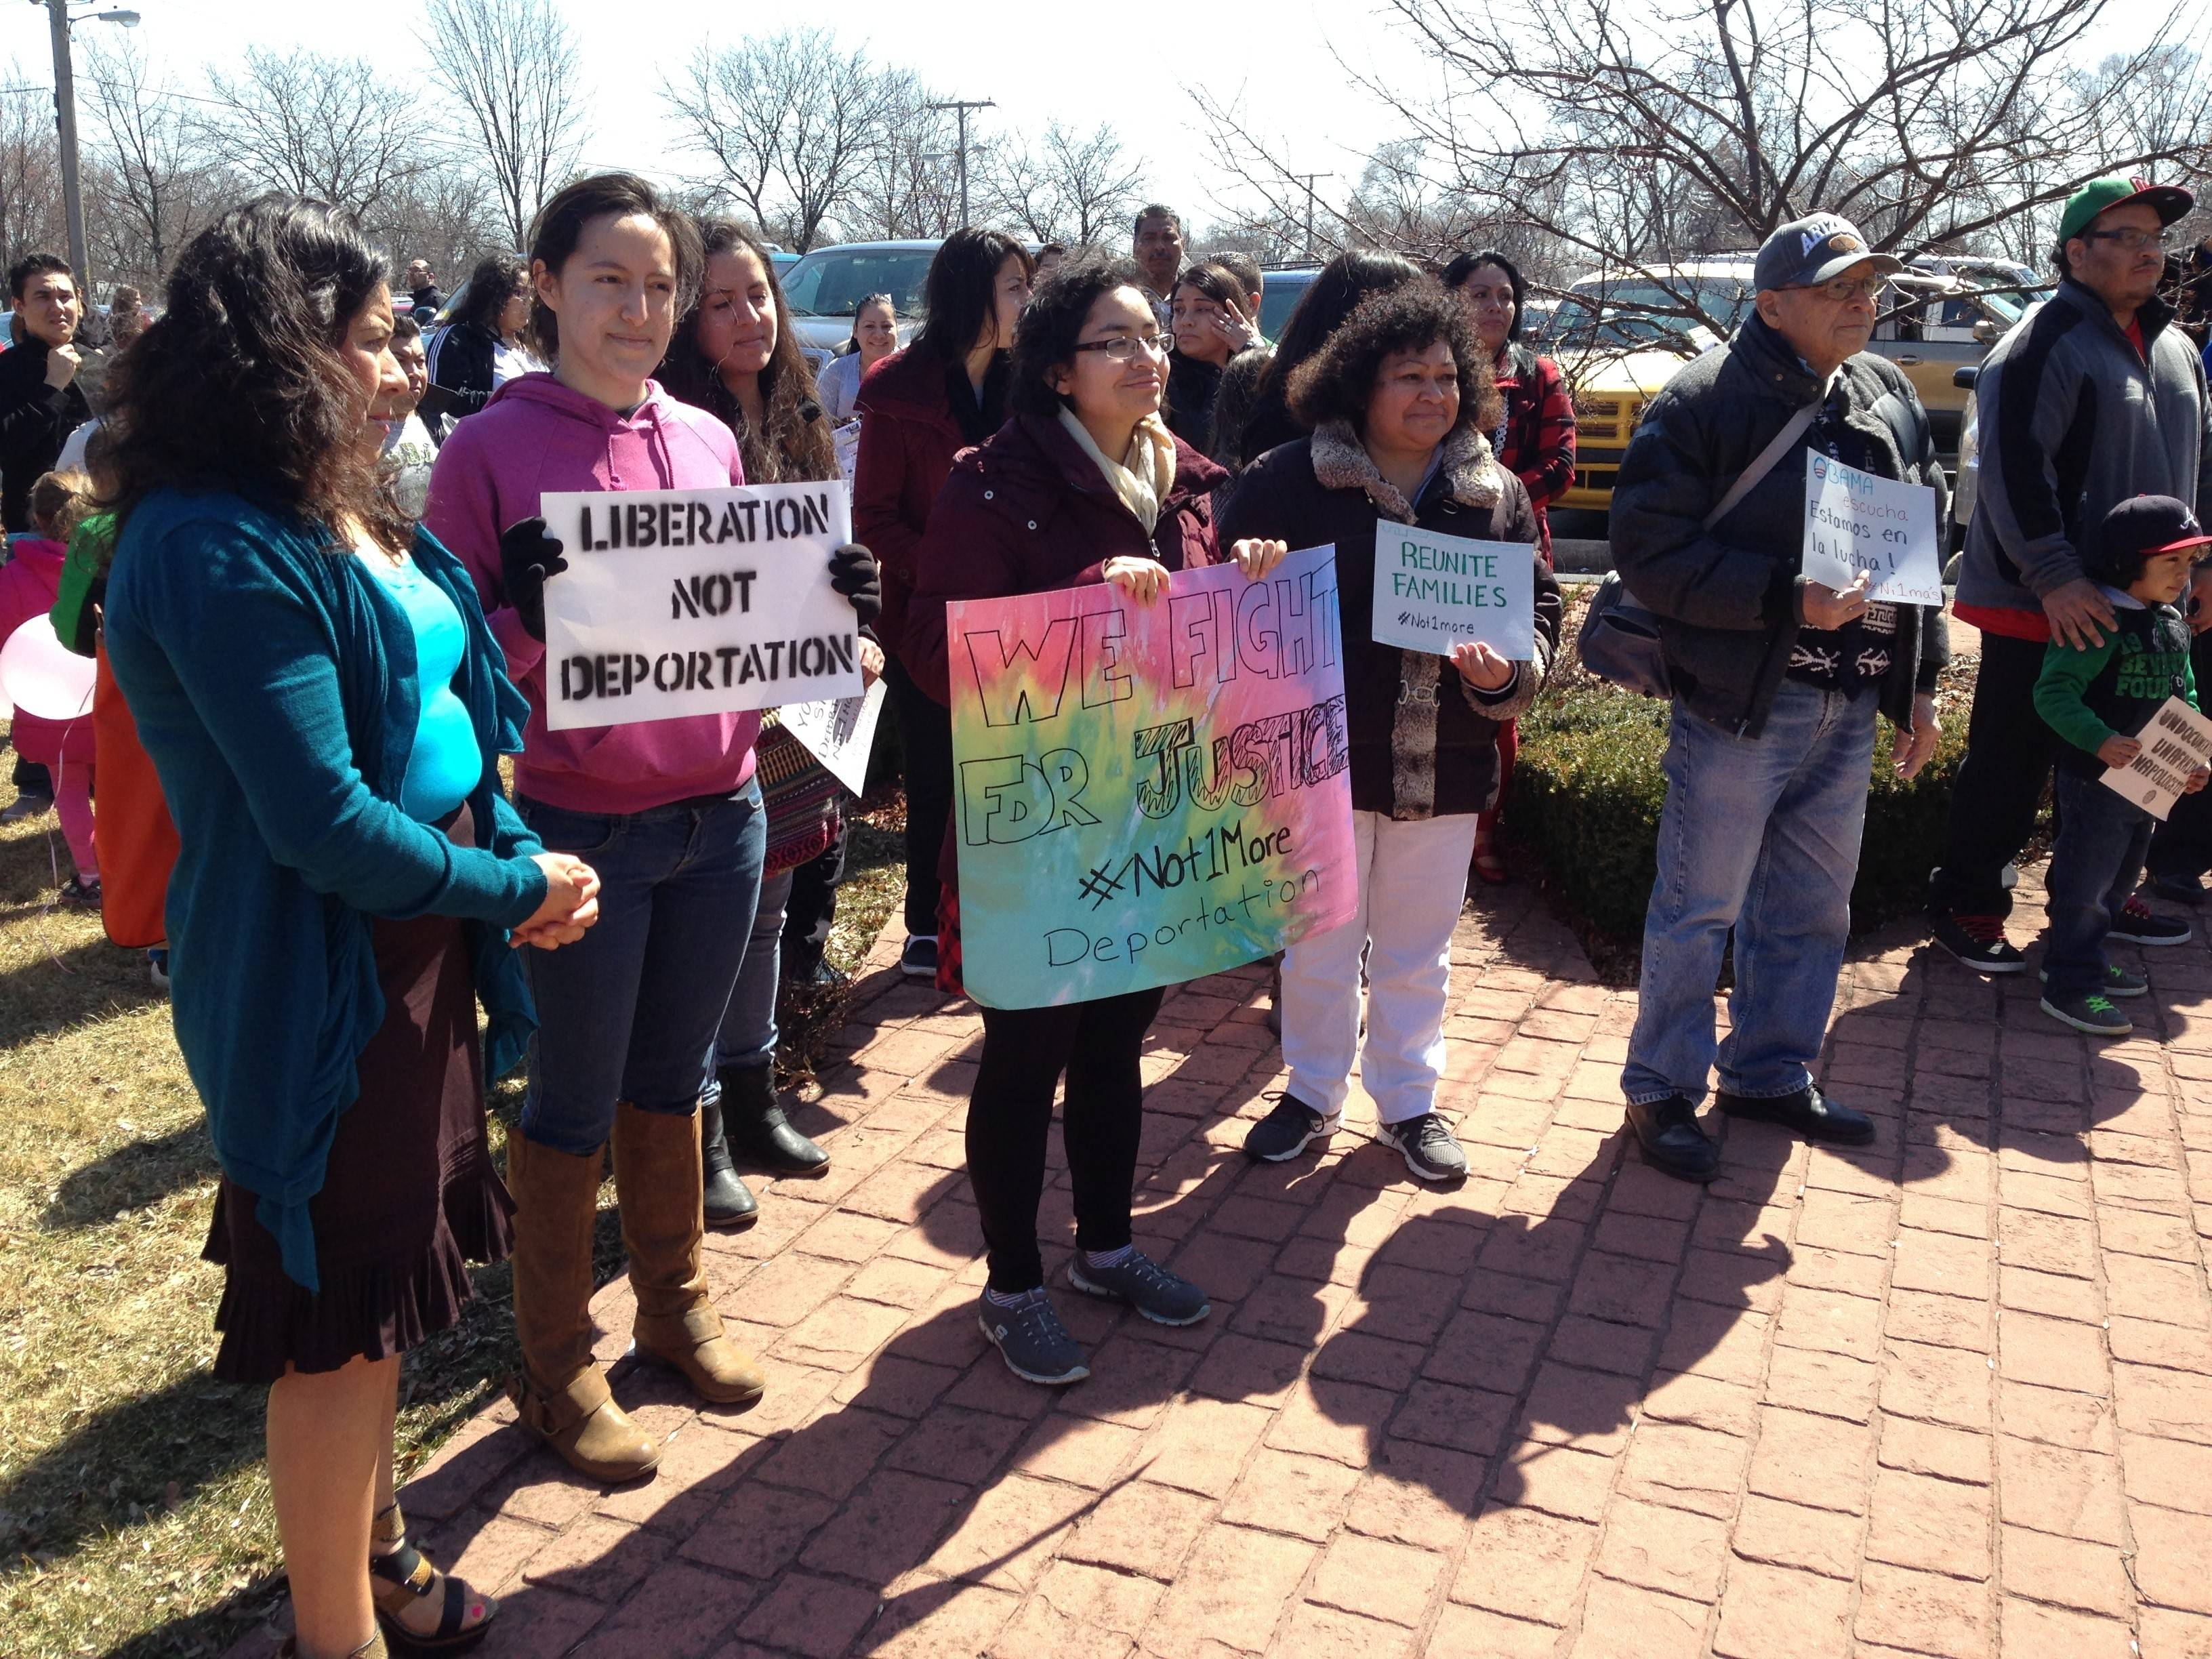 Many in the crowd at Sunday's Coming Out of the Shadows rally in Bensenville held up signs in support of ending deportations of undocumented residents.